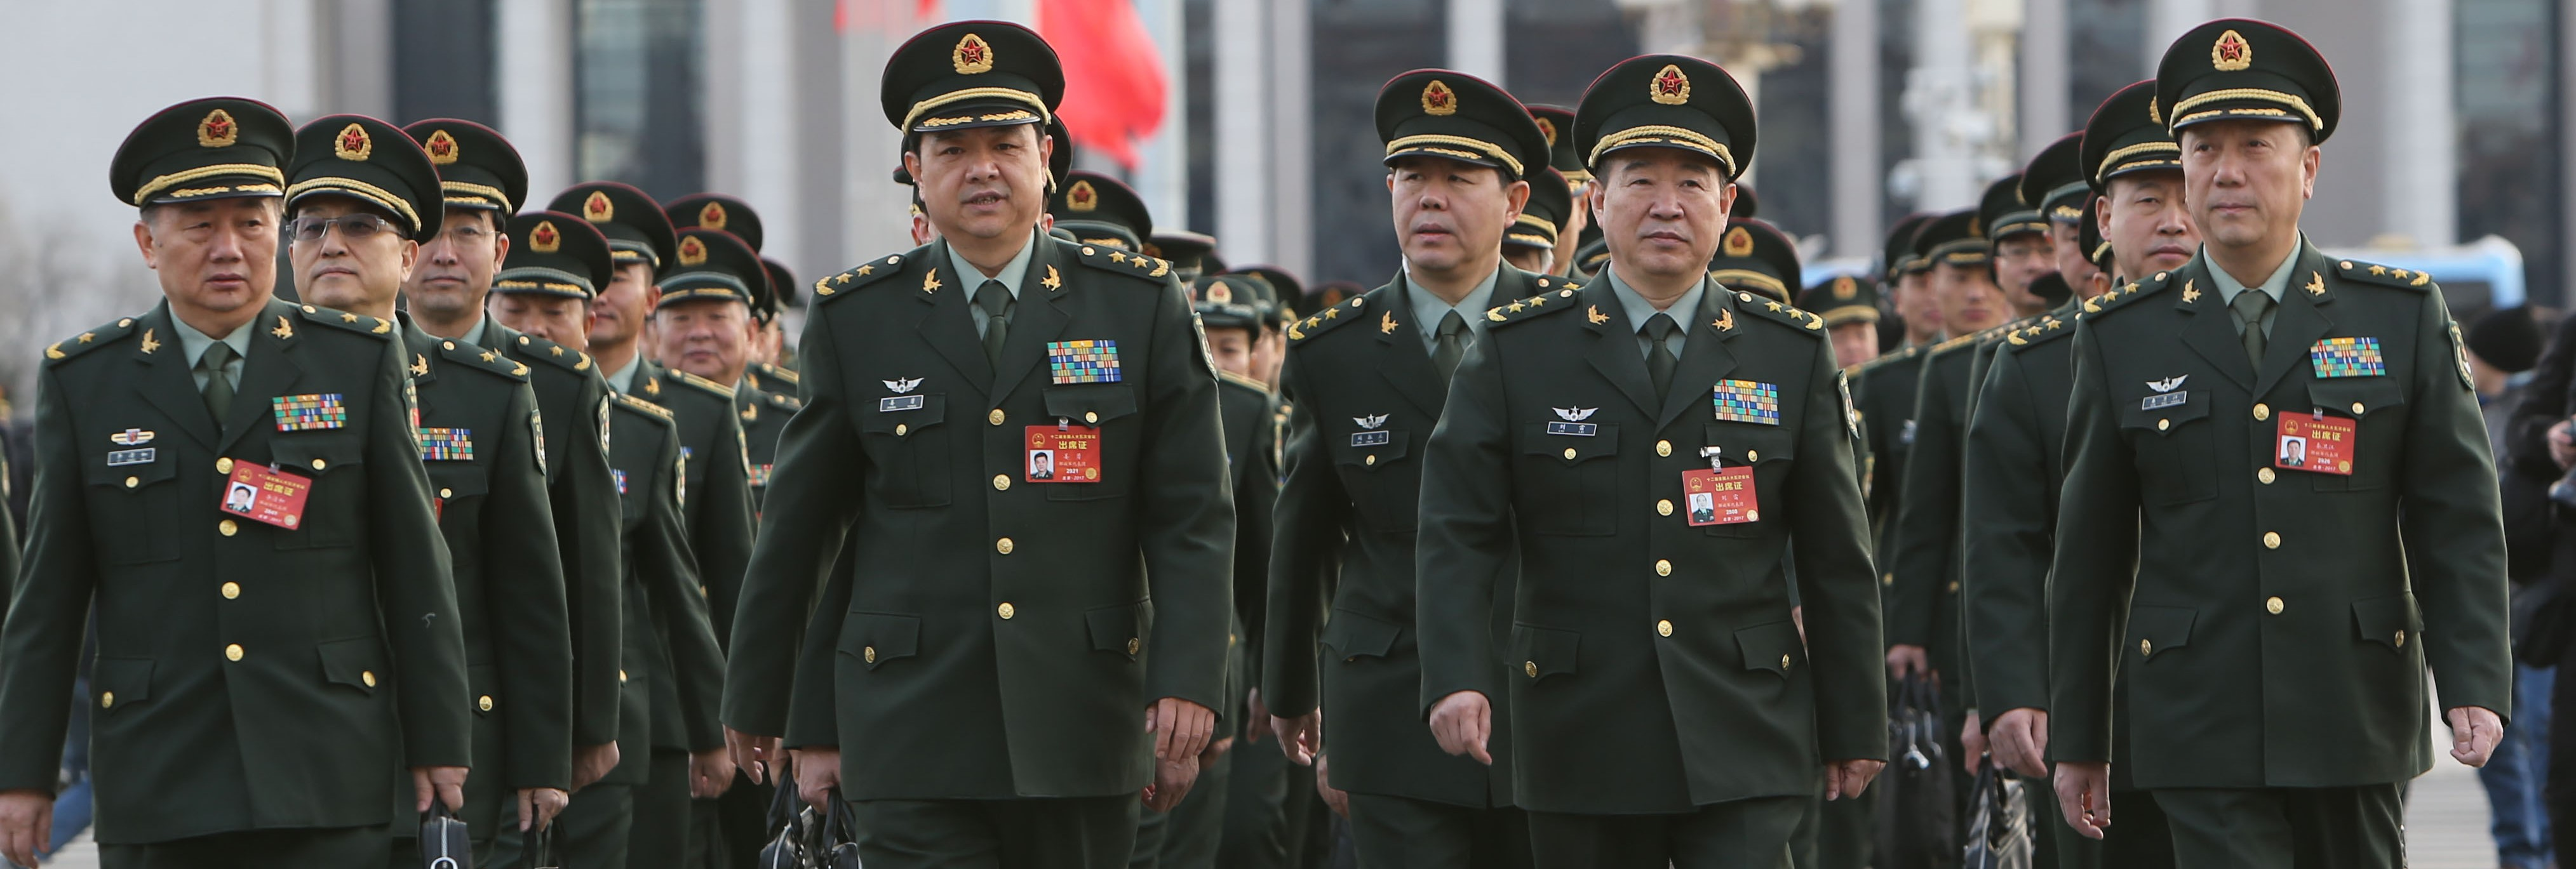 People's Liberation Army delegates arriving at the Great Hall of the People to attend the National People's Congress, March 2017 (Photo: Getty Images/VCG)